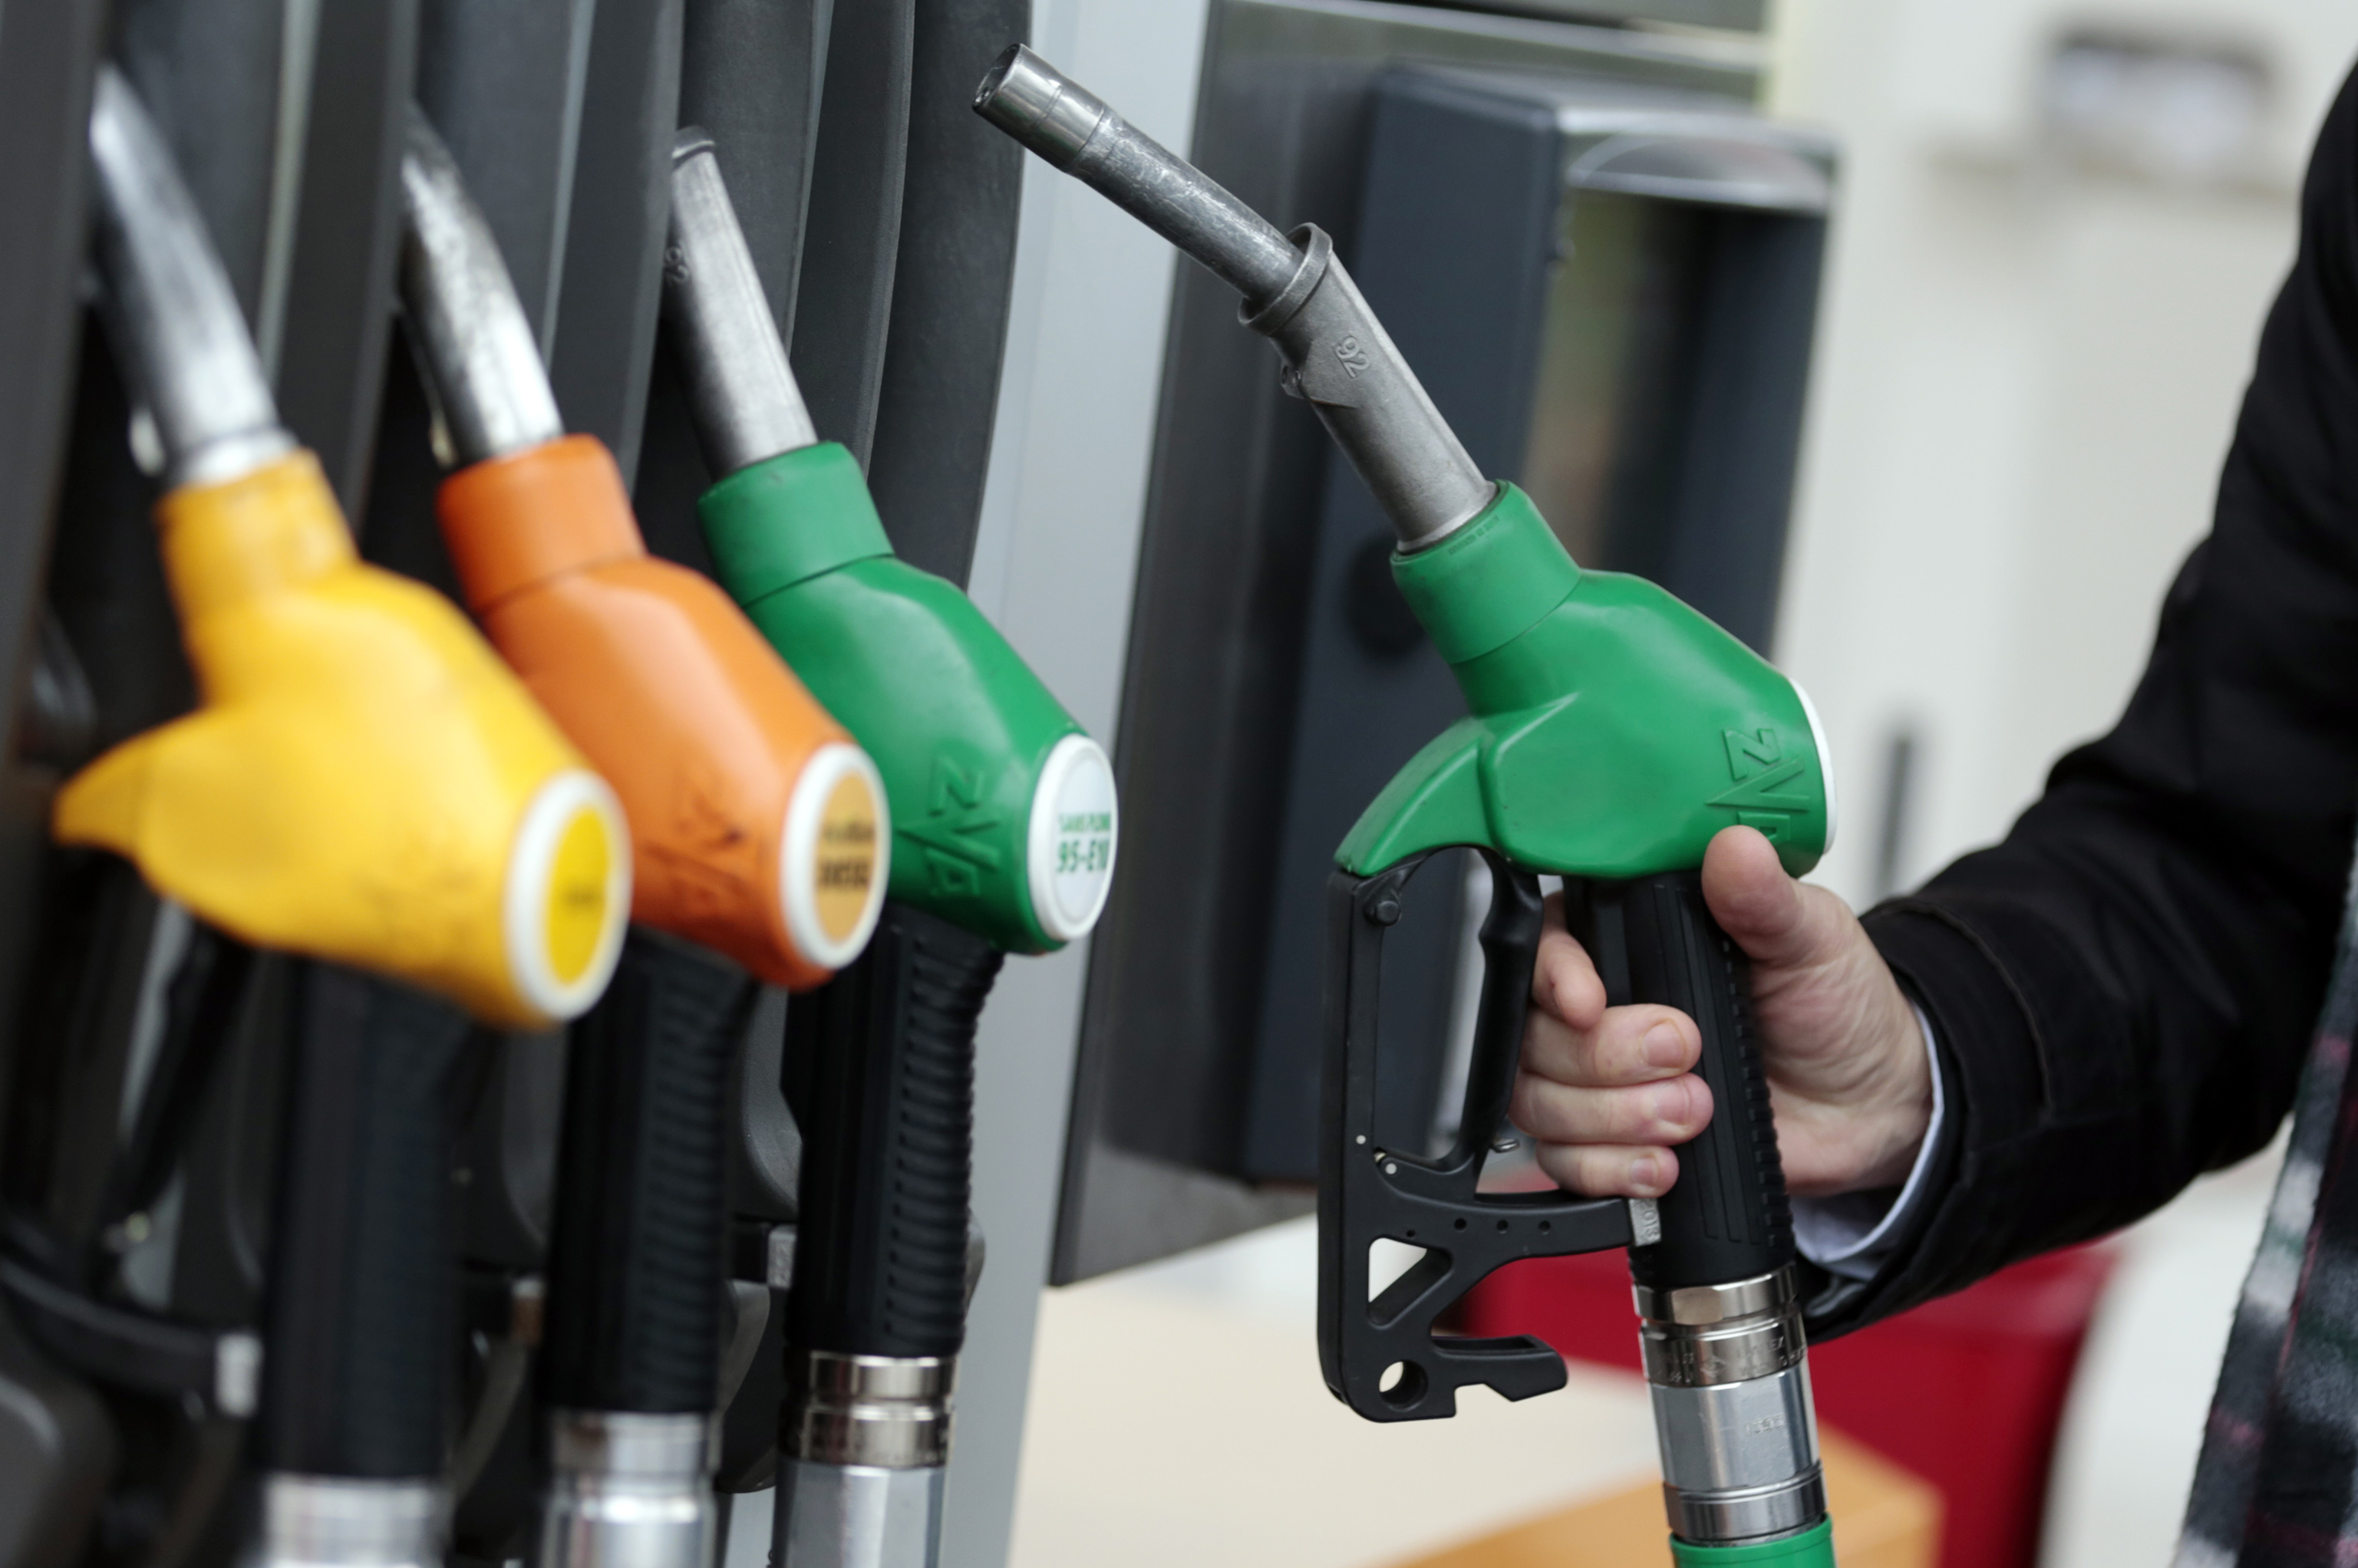 Govt cuts retail price of petrol and diesel even as crude price rises